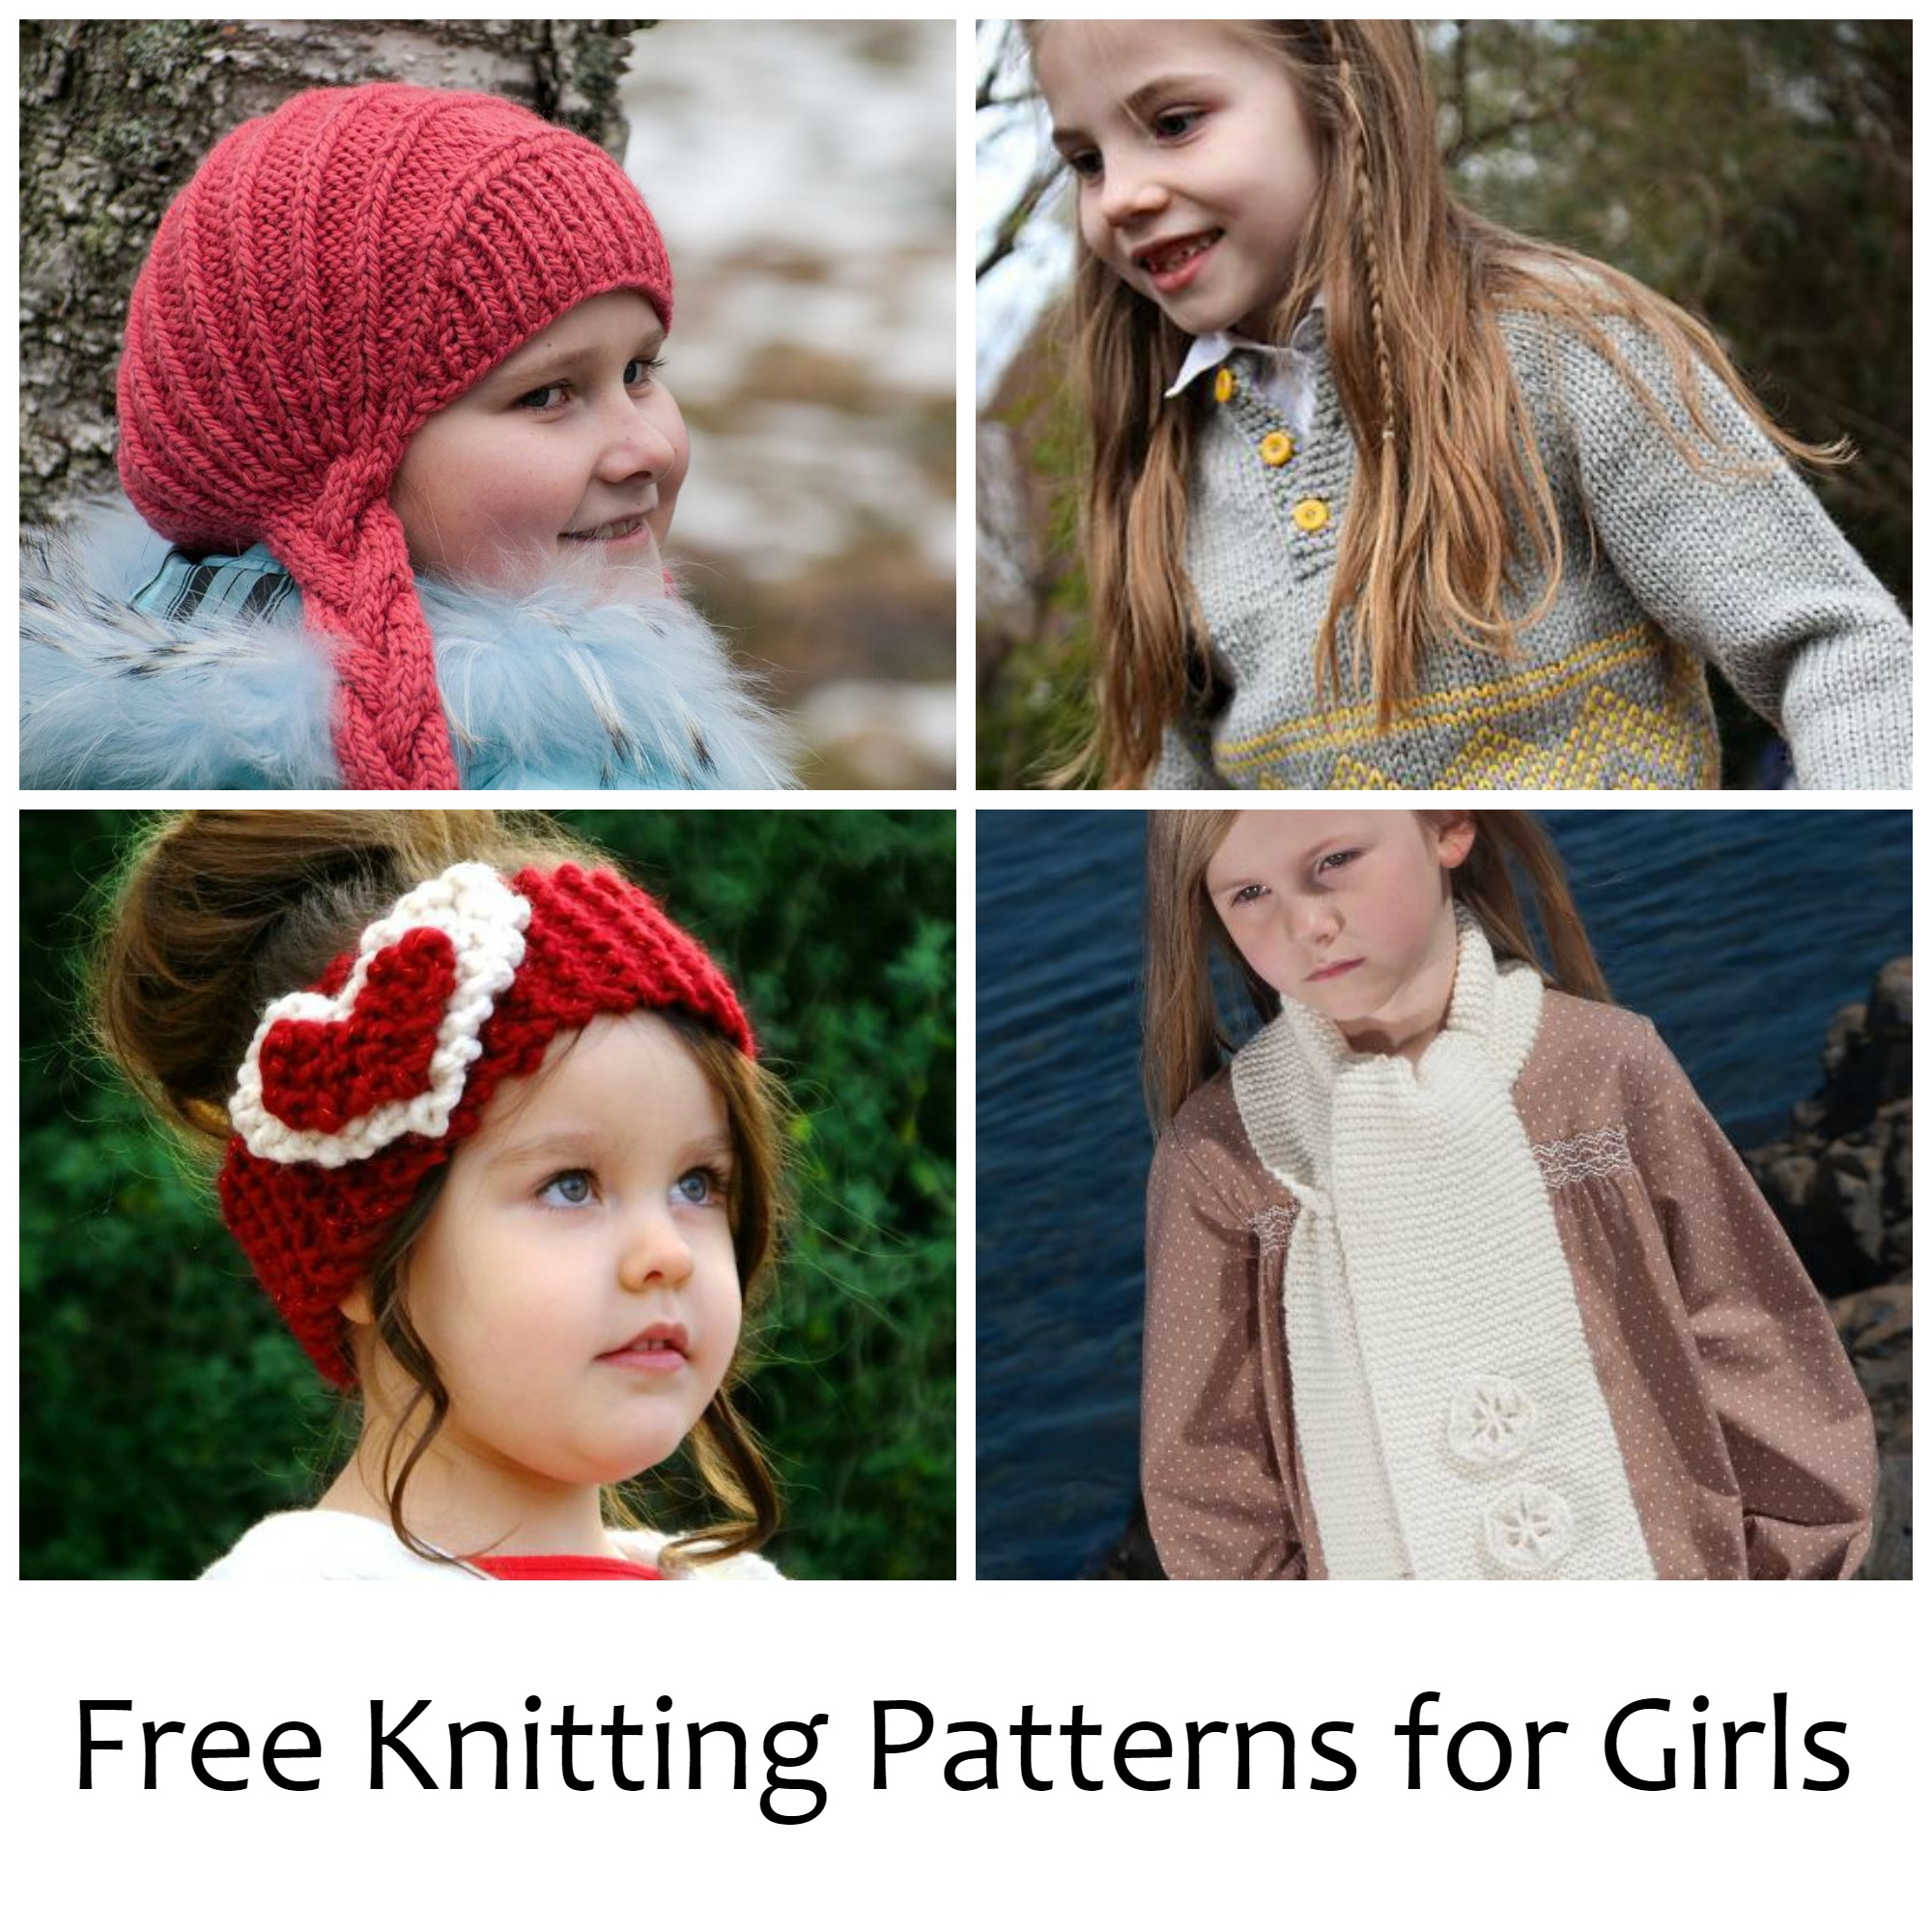 Free Knitting Patterns For Teens 10 Free Knitting Patterns For Girls On Craftsy